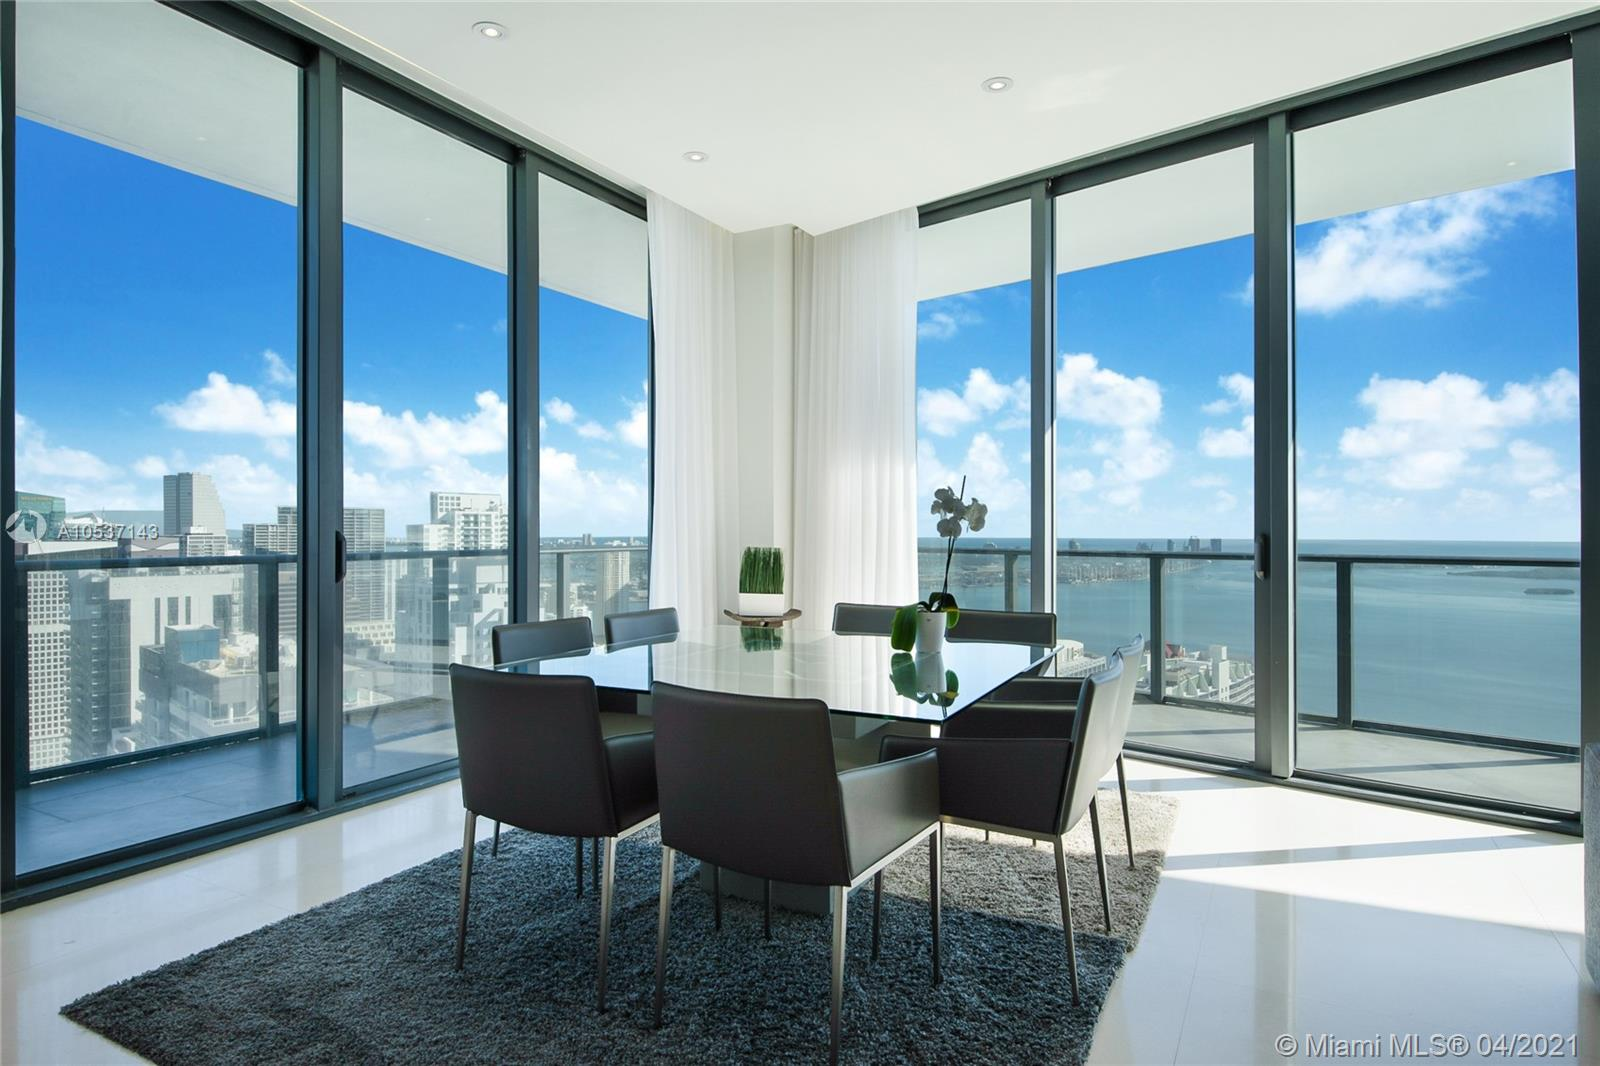 NEW GREAT PRICE AND PRICED TO SELL. AMAZING SLS BRICKELL PENTHOUSE WITH THE BEST UPGRADES IN THE BUILDING. TILES ARE MOCHA CREAM LIMESTONE FROM PORTUGAL. THE DOORS ARE ITALIAN STYLE, FRAMELESS WITH ITALIAN MAGNETIC DOOR HARDWARE. THE MASTER CLOSET HAS AN ITALIAN STYLE WOOD VEENER CLOSET AND THE MASTER BATH HAS PORCELAIN TILES FROM SPAIN TOGETHER WITH AN INFINITY ELECTRIC MIRROR. THE UNIT HAS LED SPOTLIGHT LIGHTING THROUGHOUT. EACH OF THE 3 BEDROOMS HAS MOTORIZED BLACKOUT SHADES. 